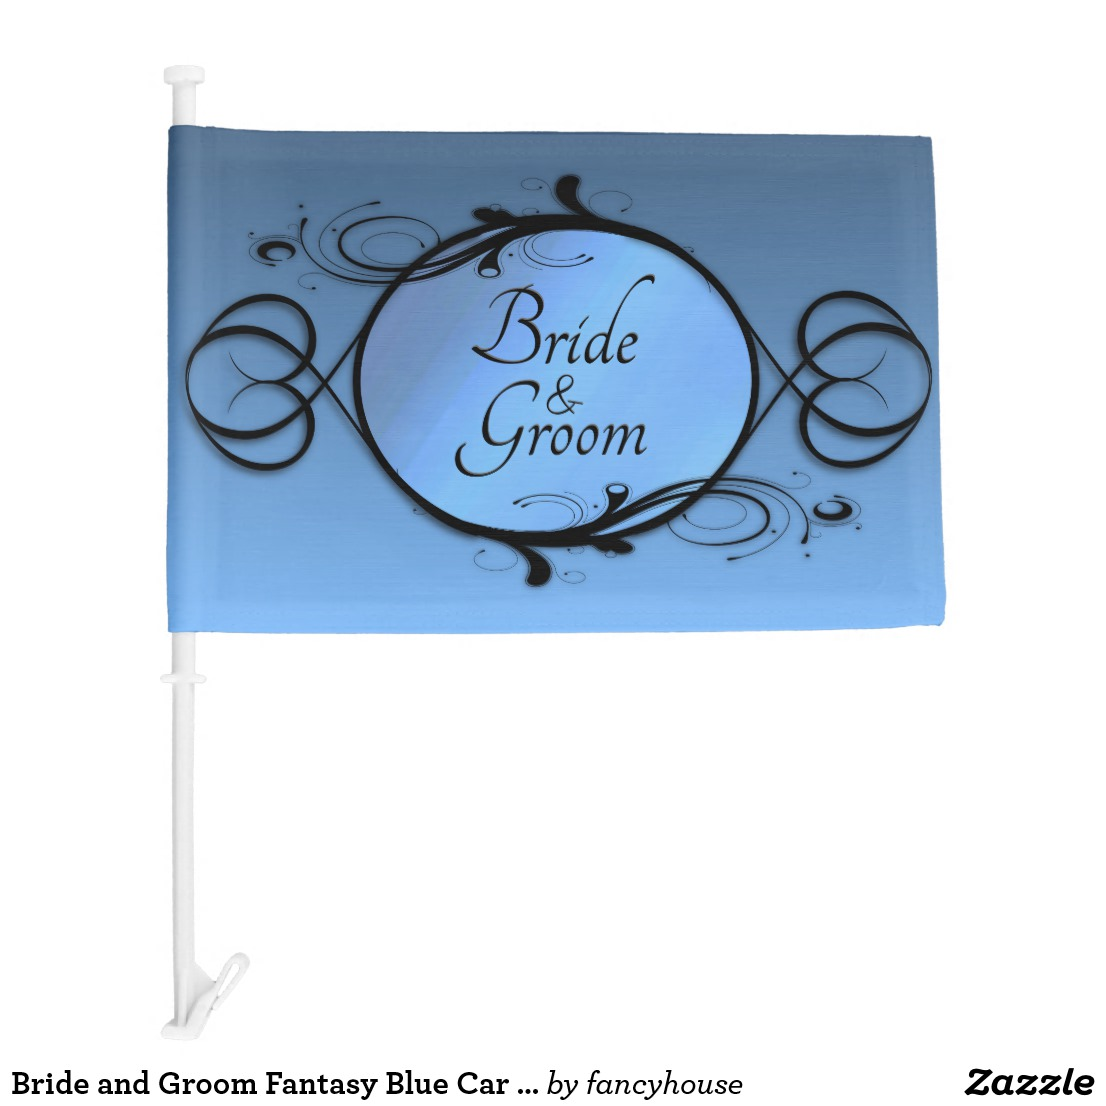 Bride and Groom Fantasy Blue Car Flag